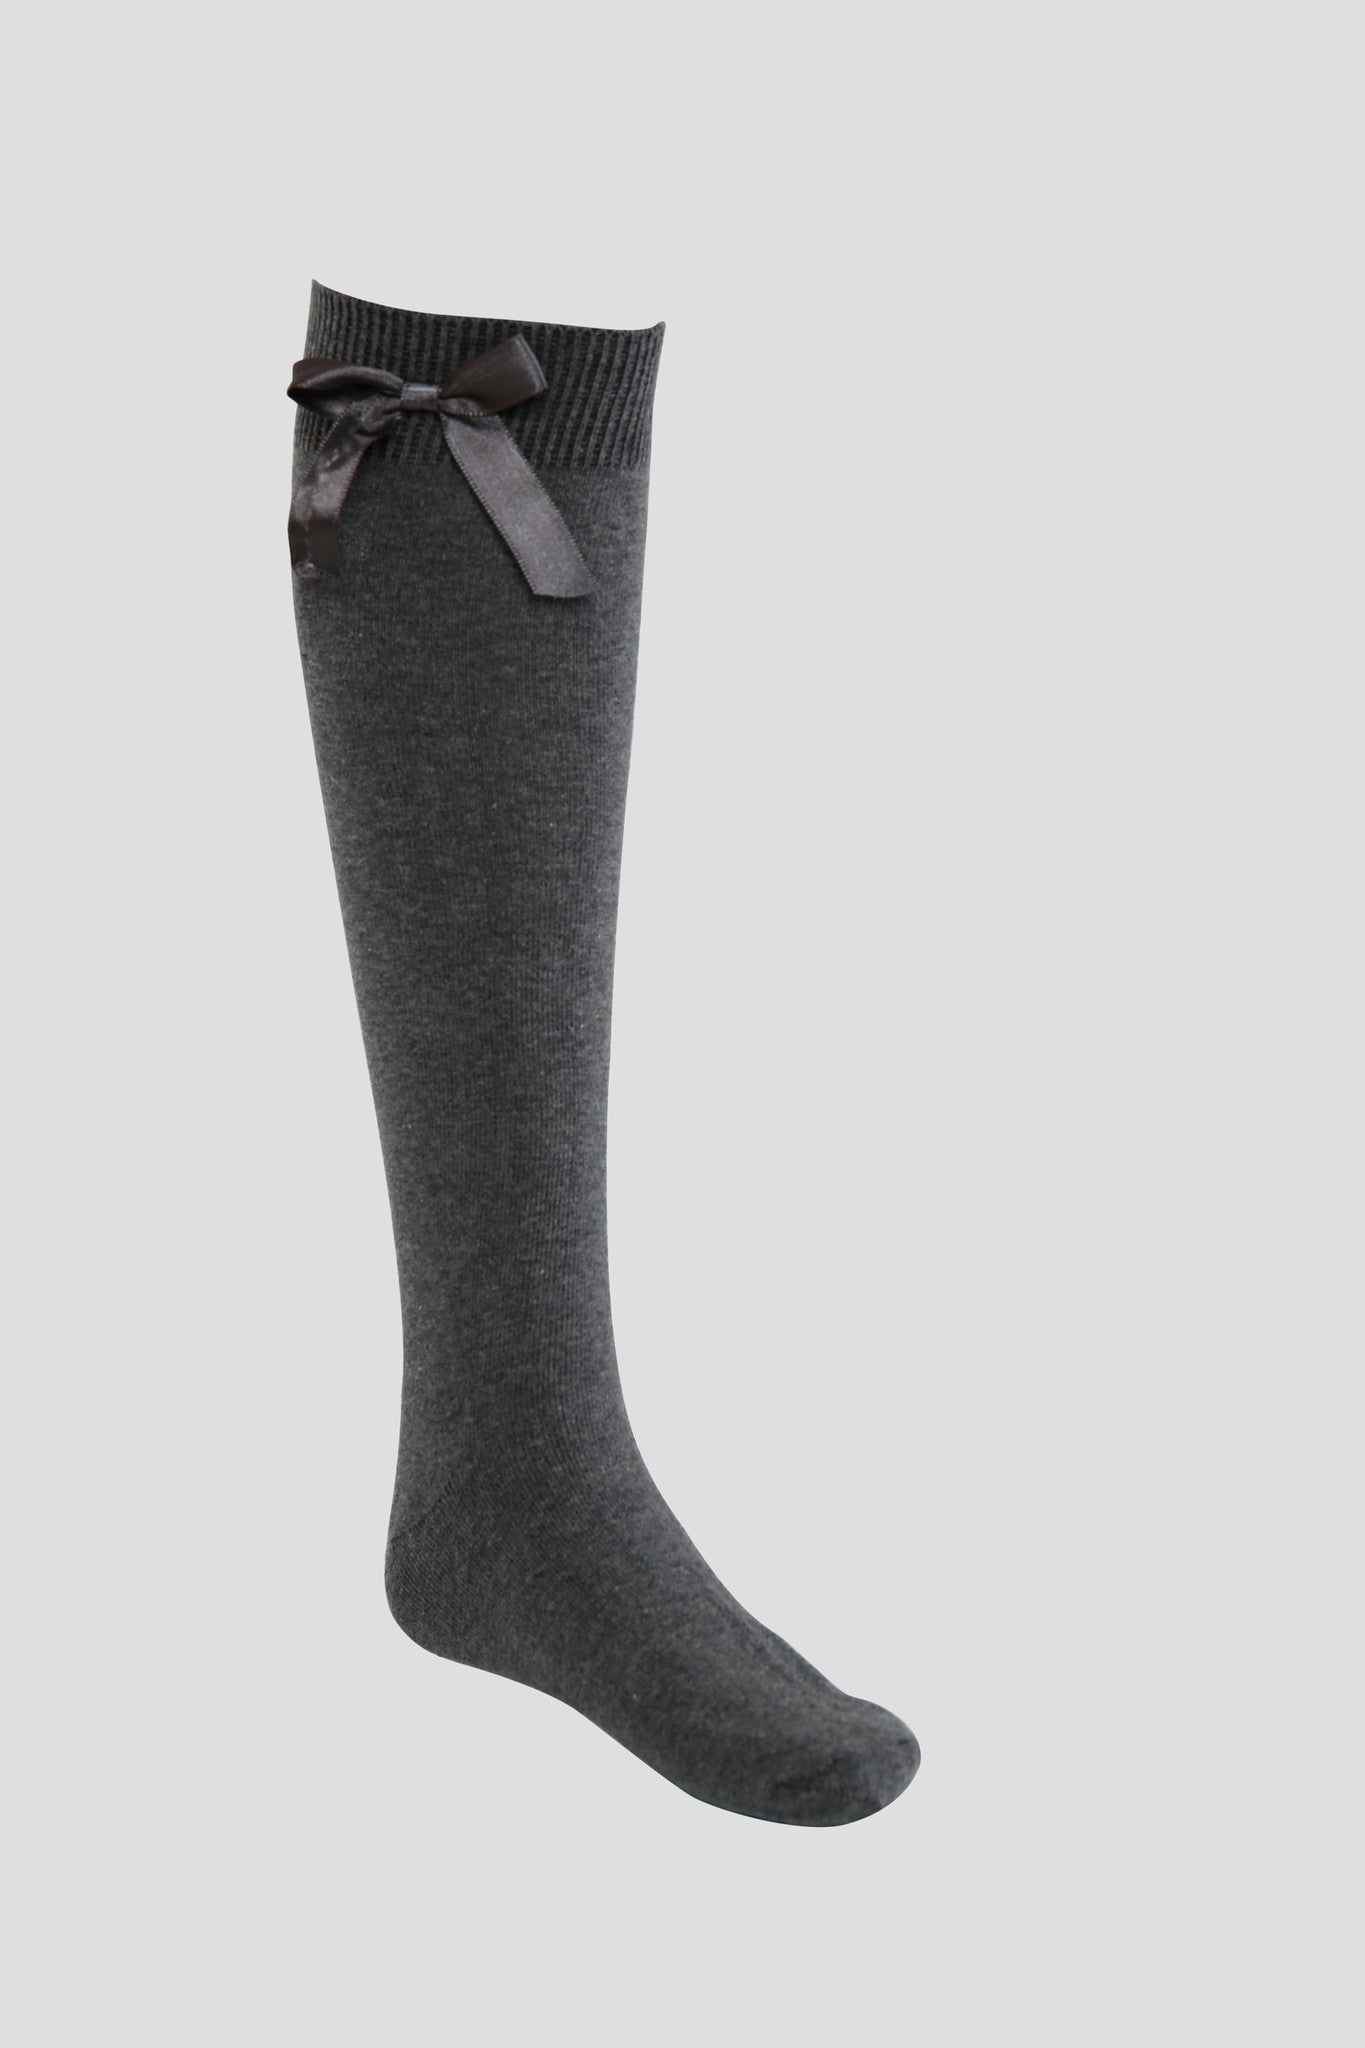 0524f4735de67 Girls knee-high school socks with bow detail - Quality school uniforms at  the School Clothing Company